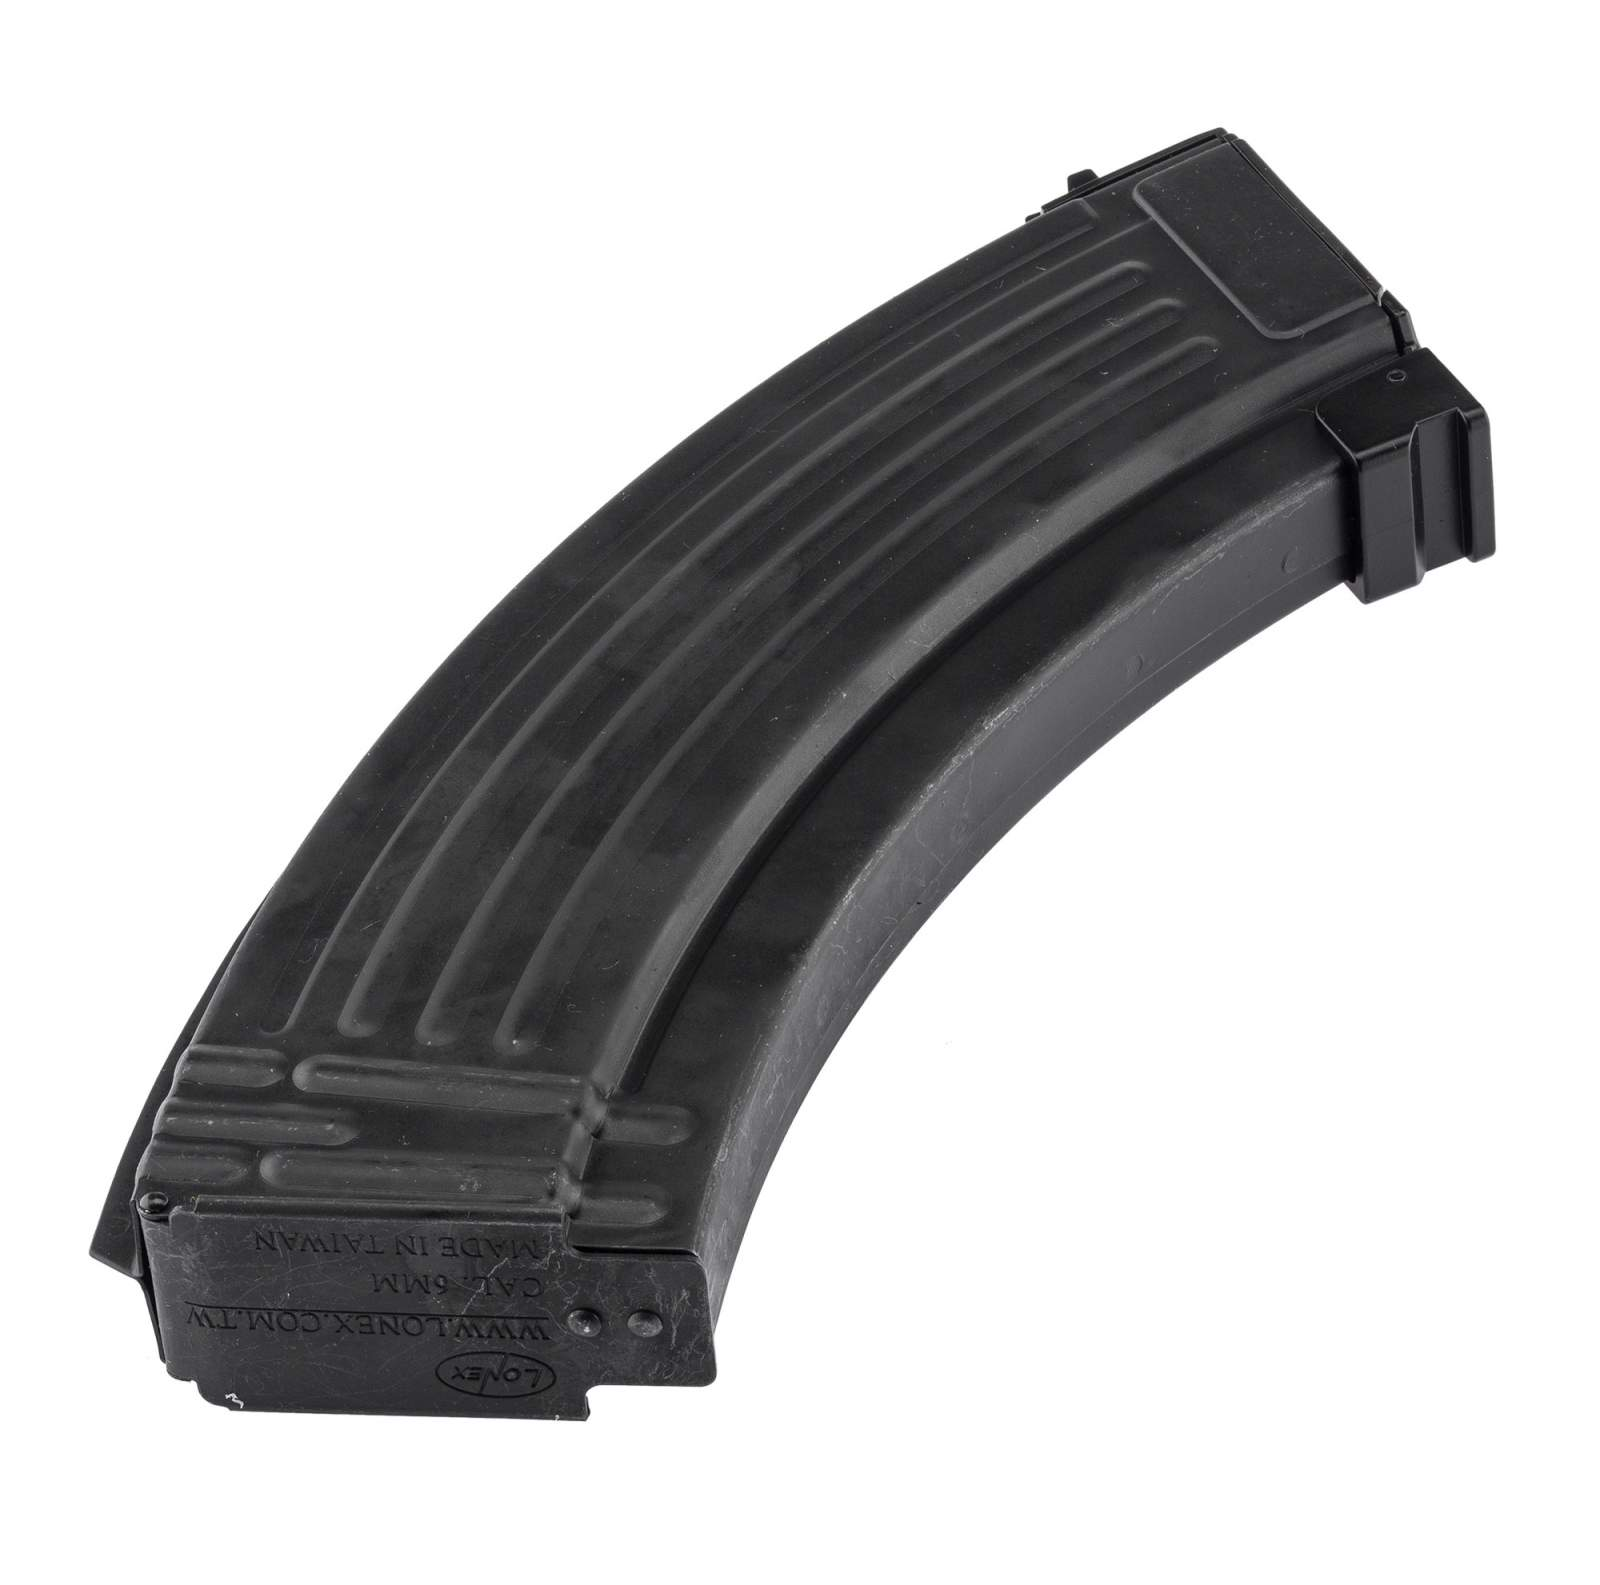 Photo Airsoft Magazine Metal Flash Hi Cap 520 rds for AK (made by Lonex)